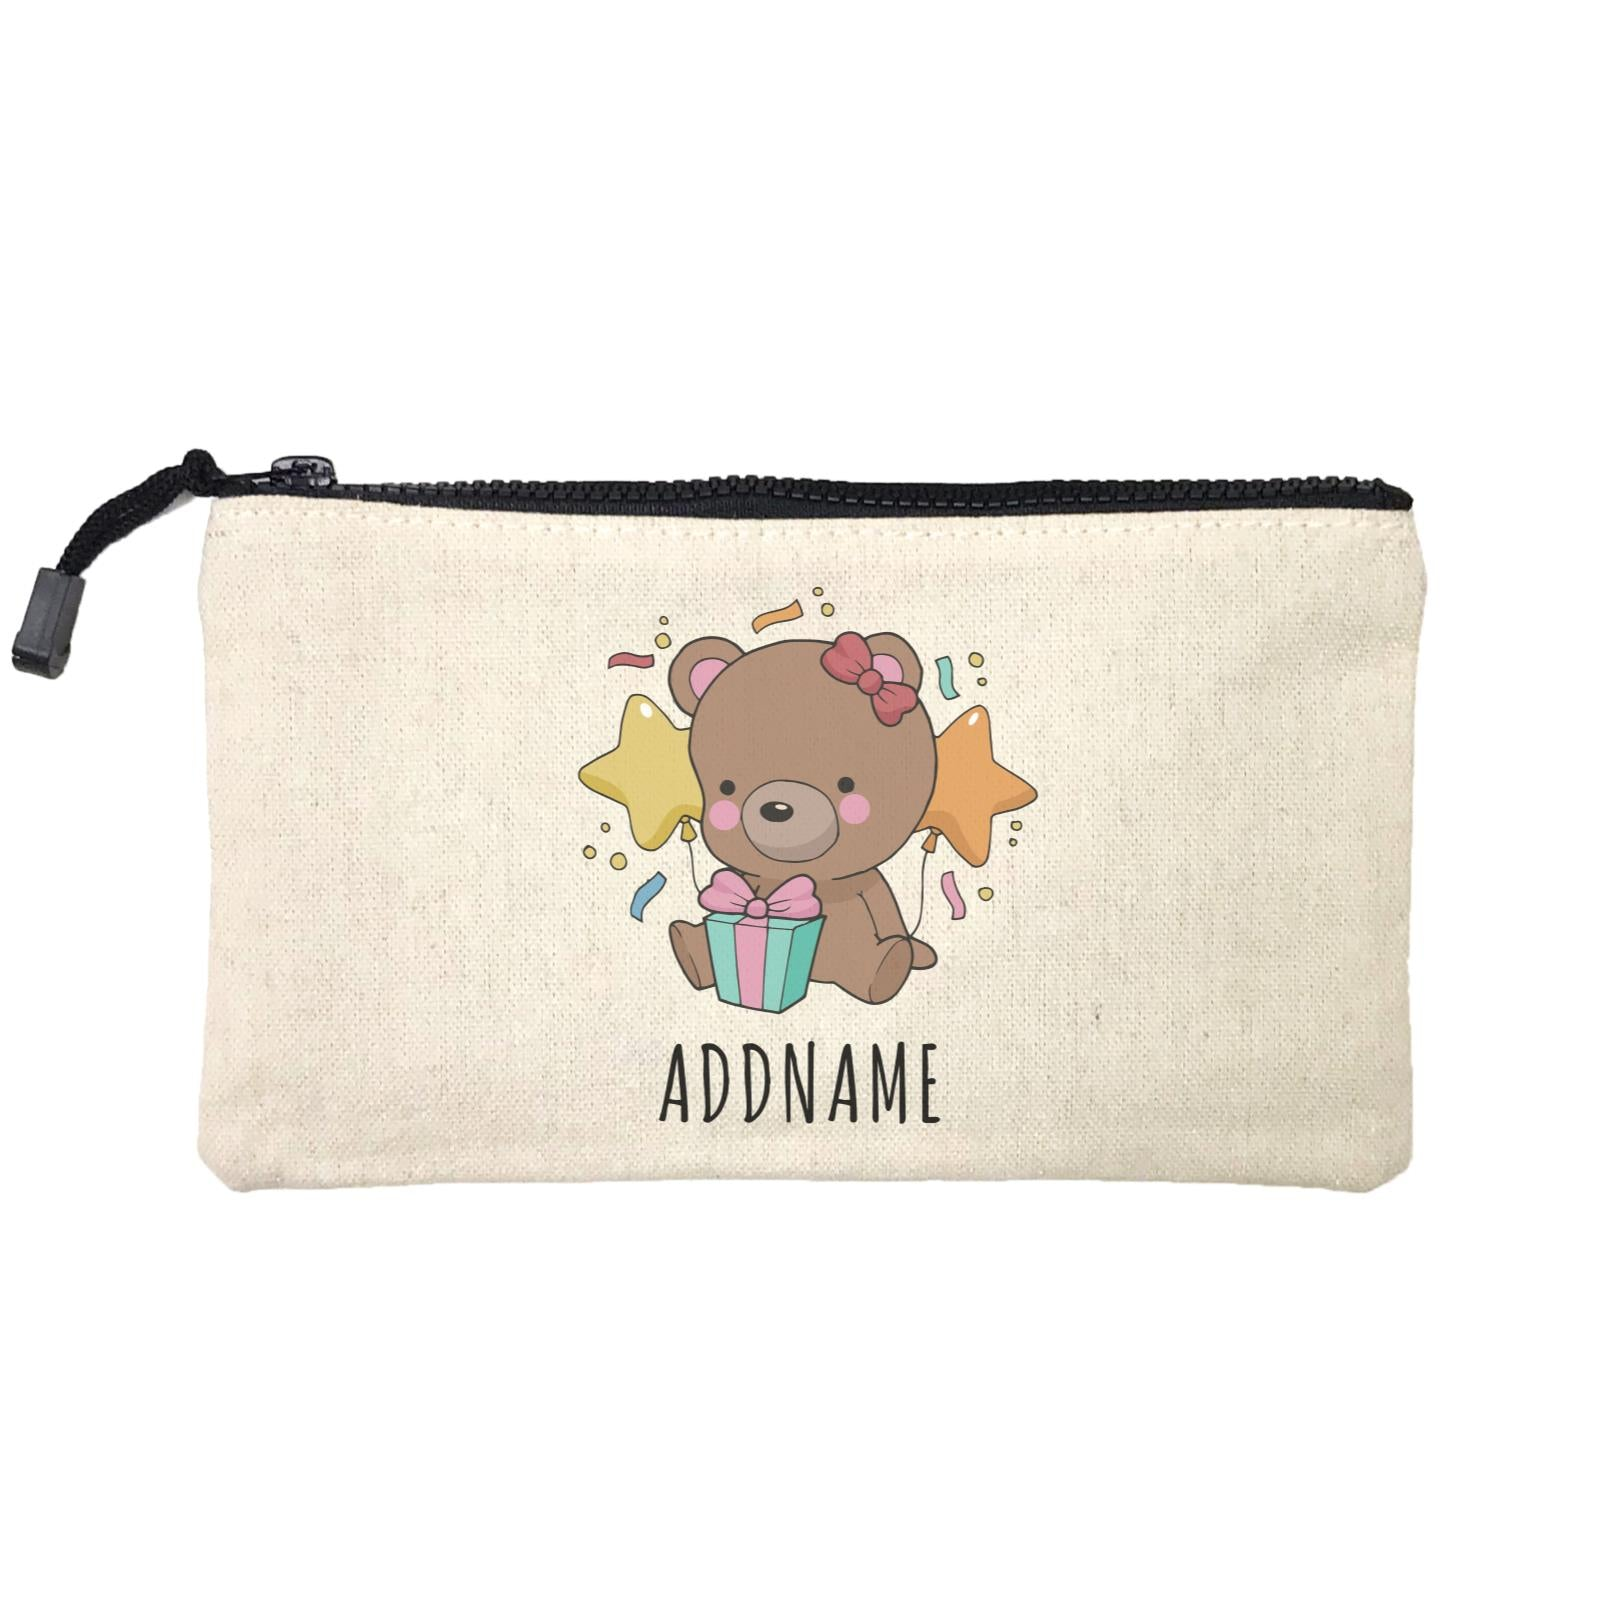 Birthday Sketch Animals Bear with Present Addname Mini Accessories Stationery Pouch